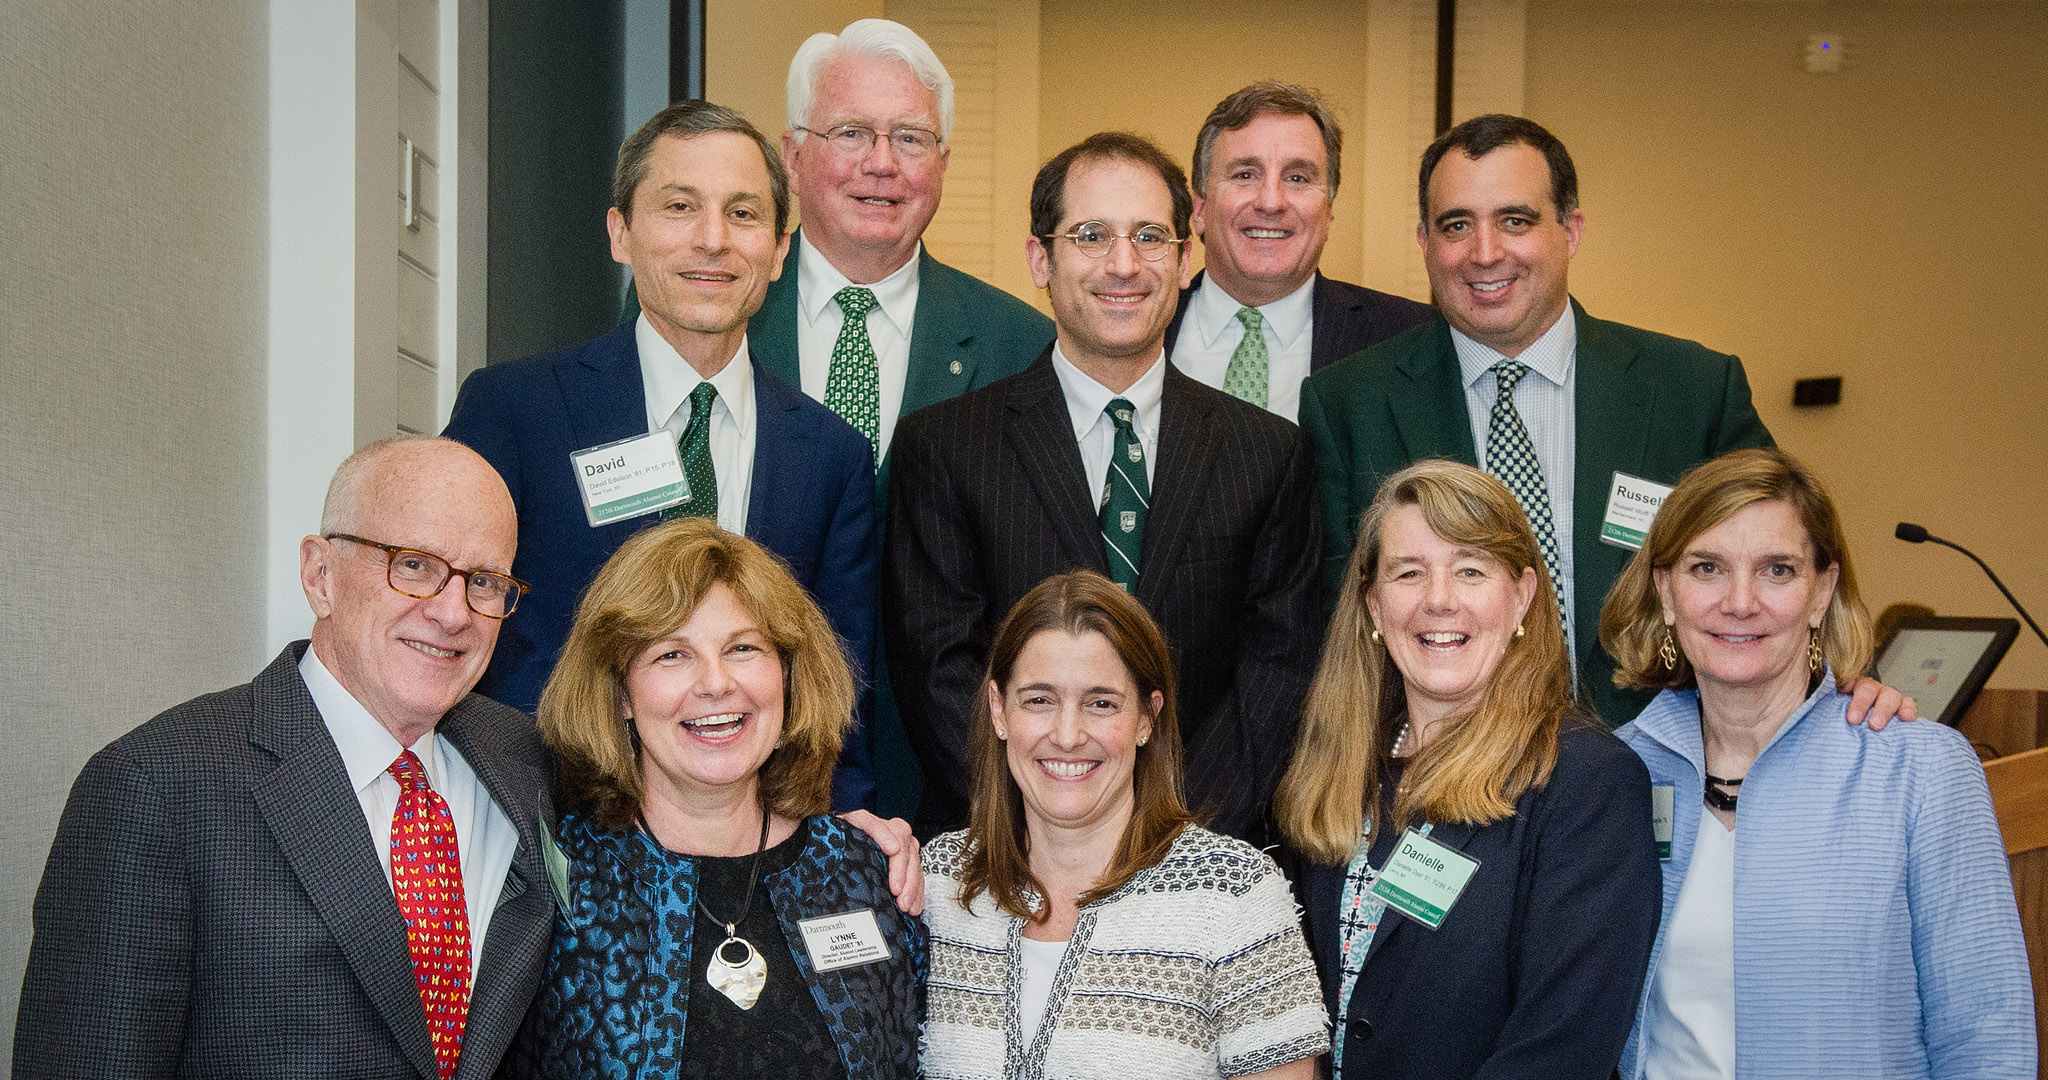 Members of the Dartmouth Alumni Council